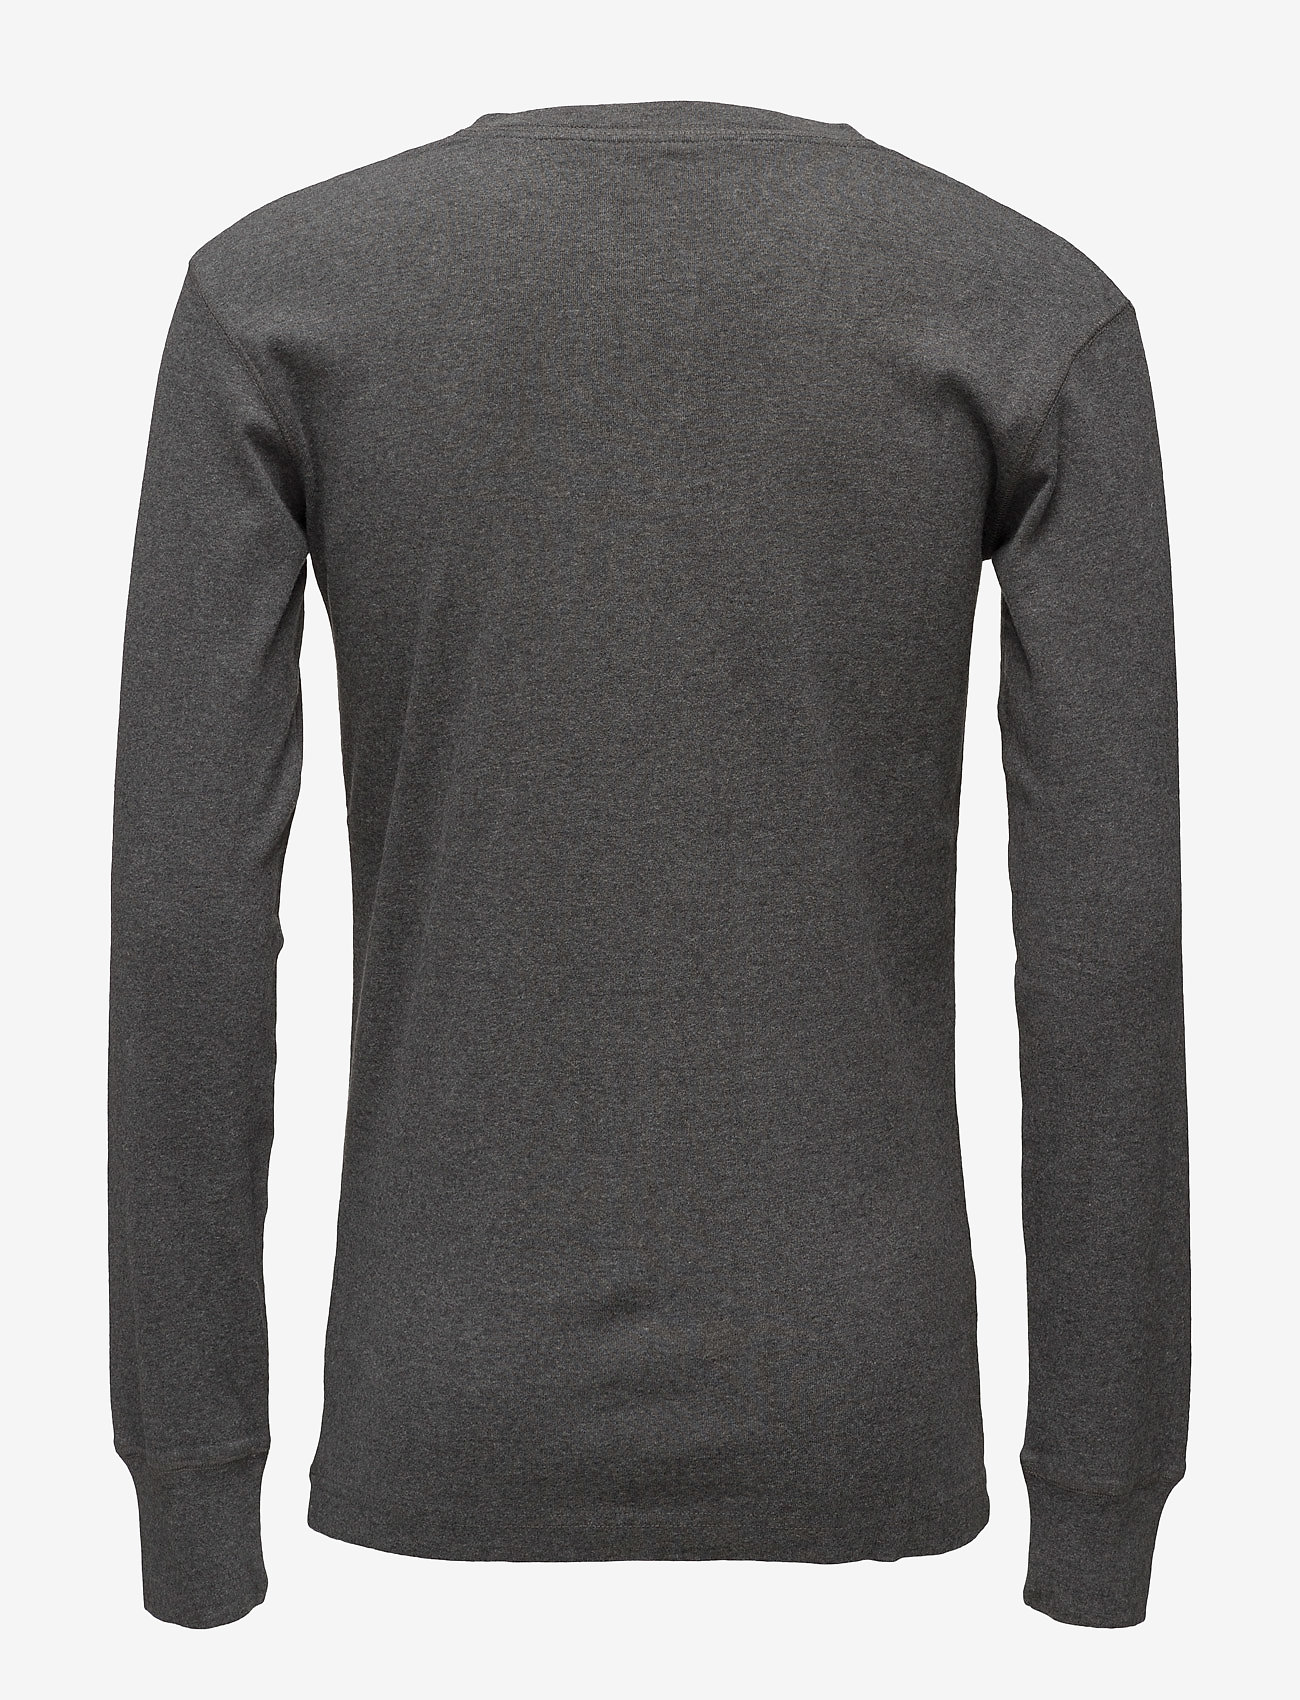 Knowledge Cotton Apparel CEDAR LS Henley - GOTS/Vegan - T-skjorter DARK GREY MELANGE - Menn Klær